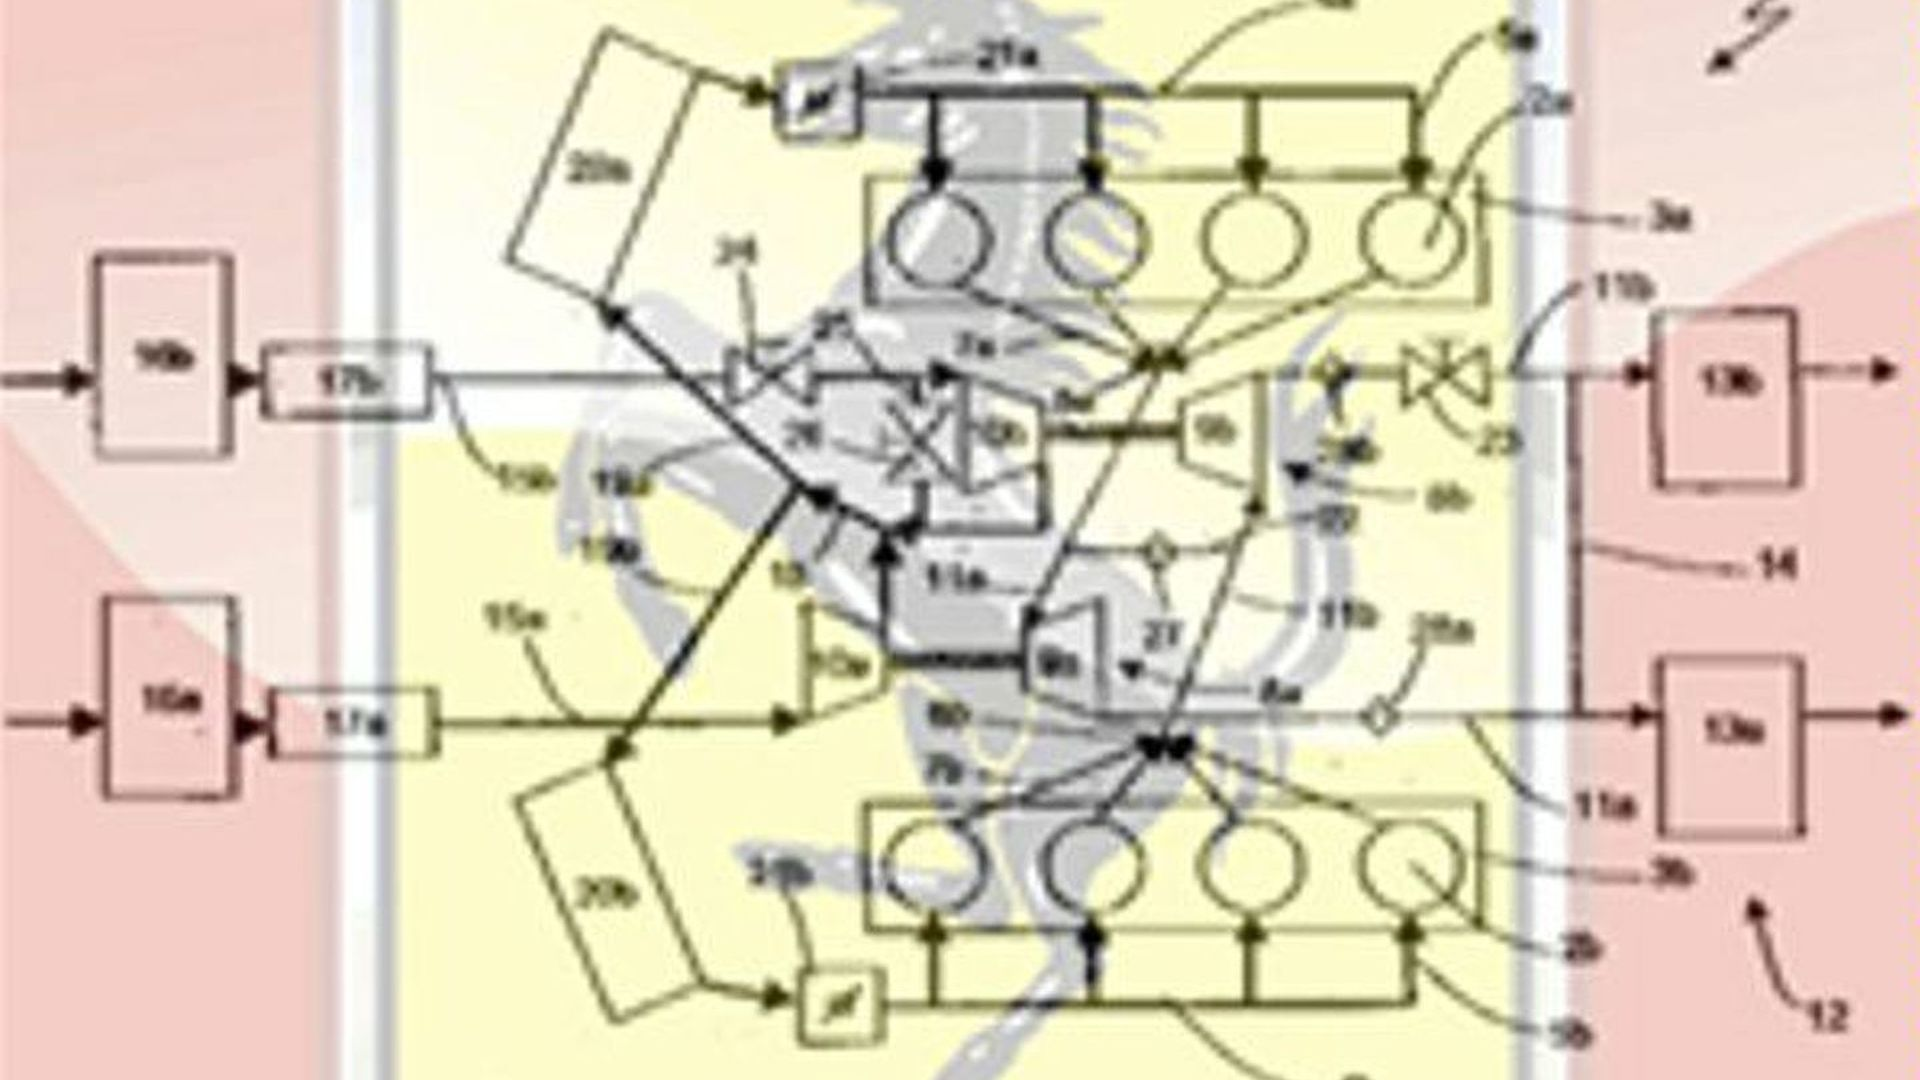 Ferrari twin turbo V8 engine patent schematic - 329189 | Twin Turbo V8 Engine Diagram |  | Motor1.com